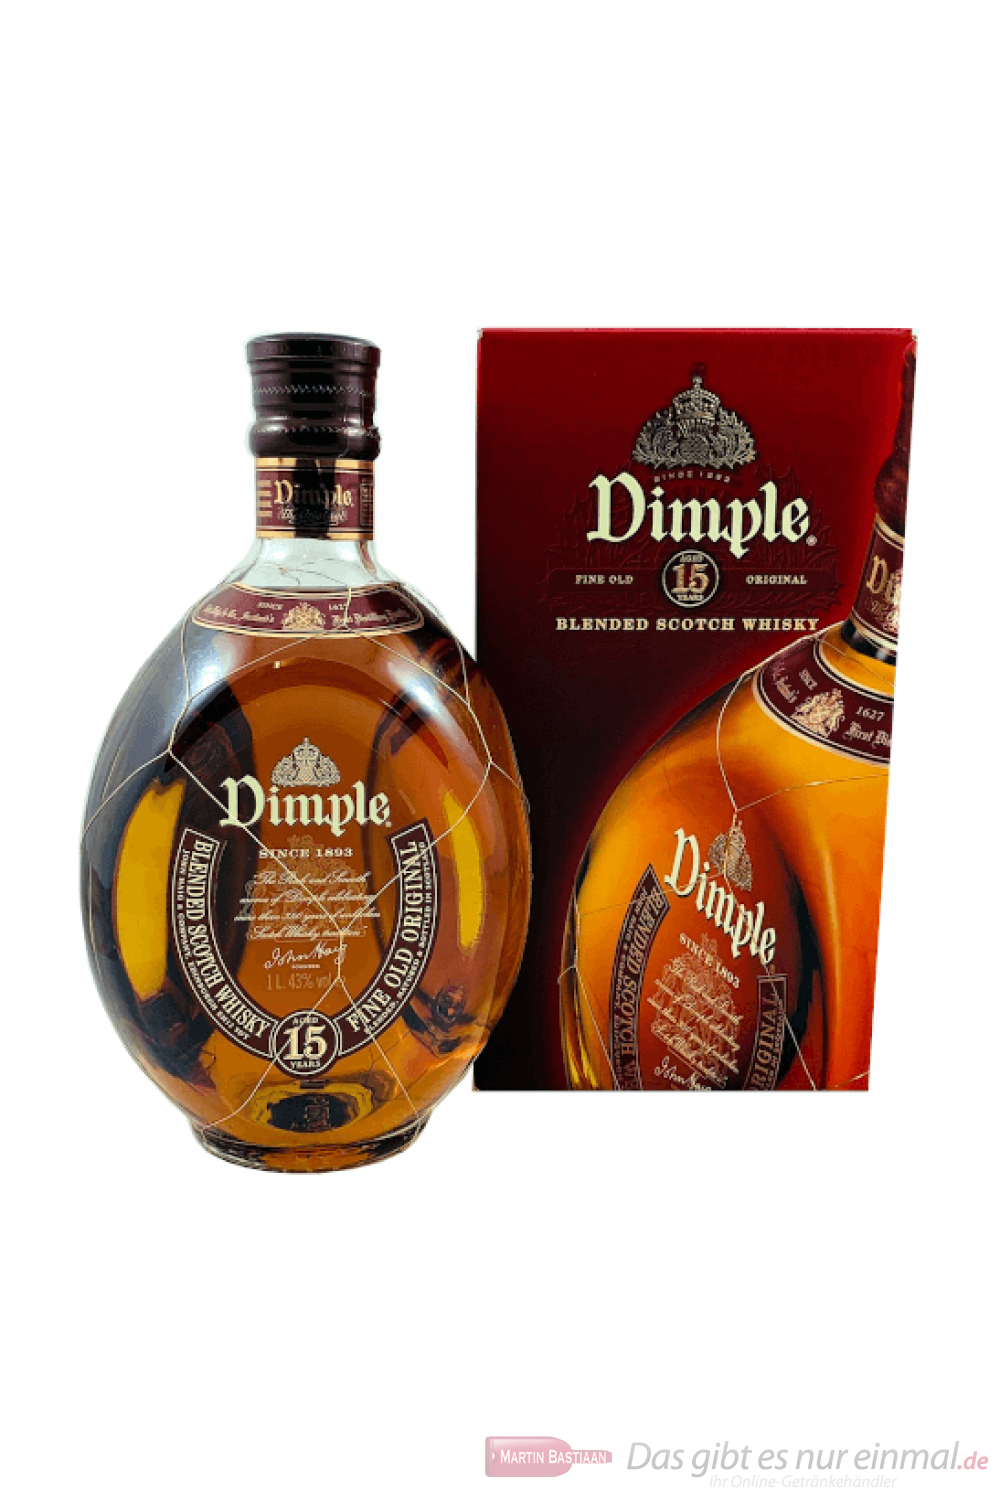 Dimple Scotch 15 Jahre Blended Scotch Whisky 1l